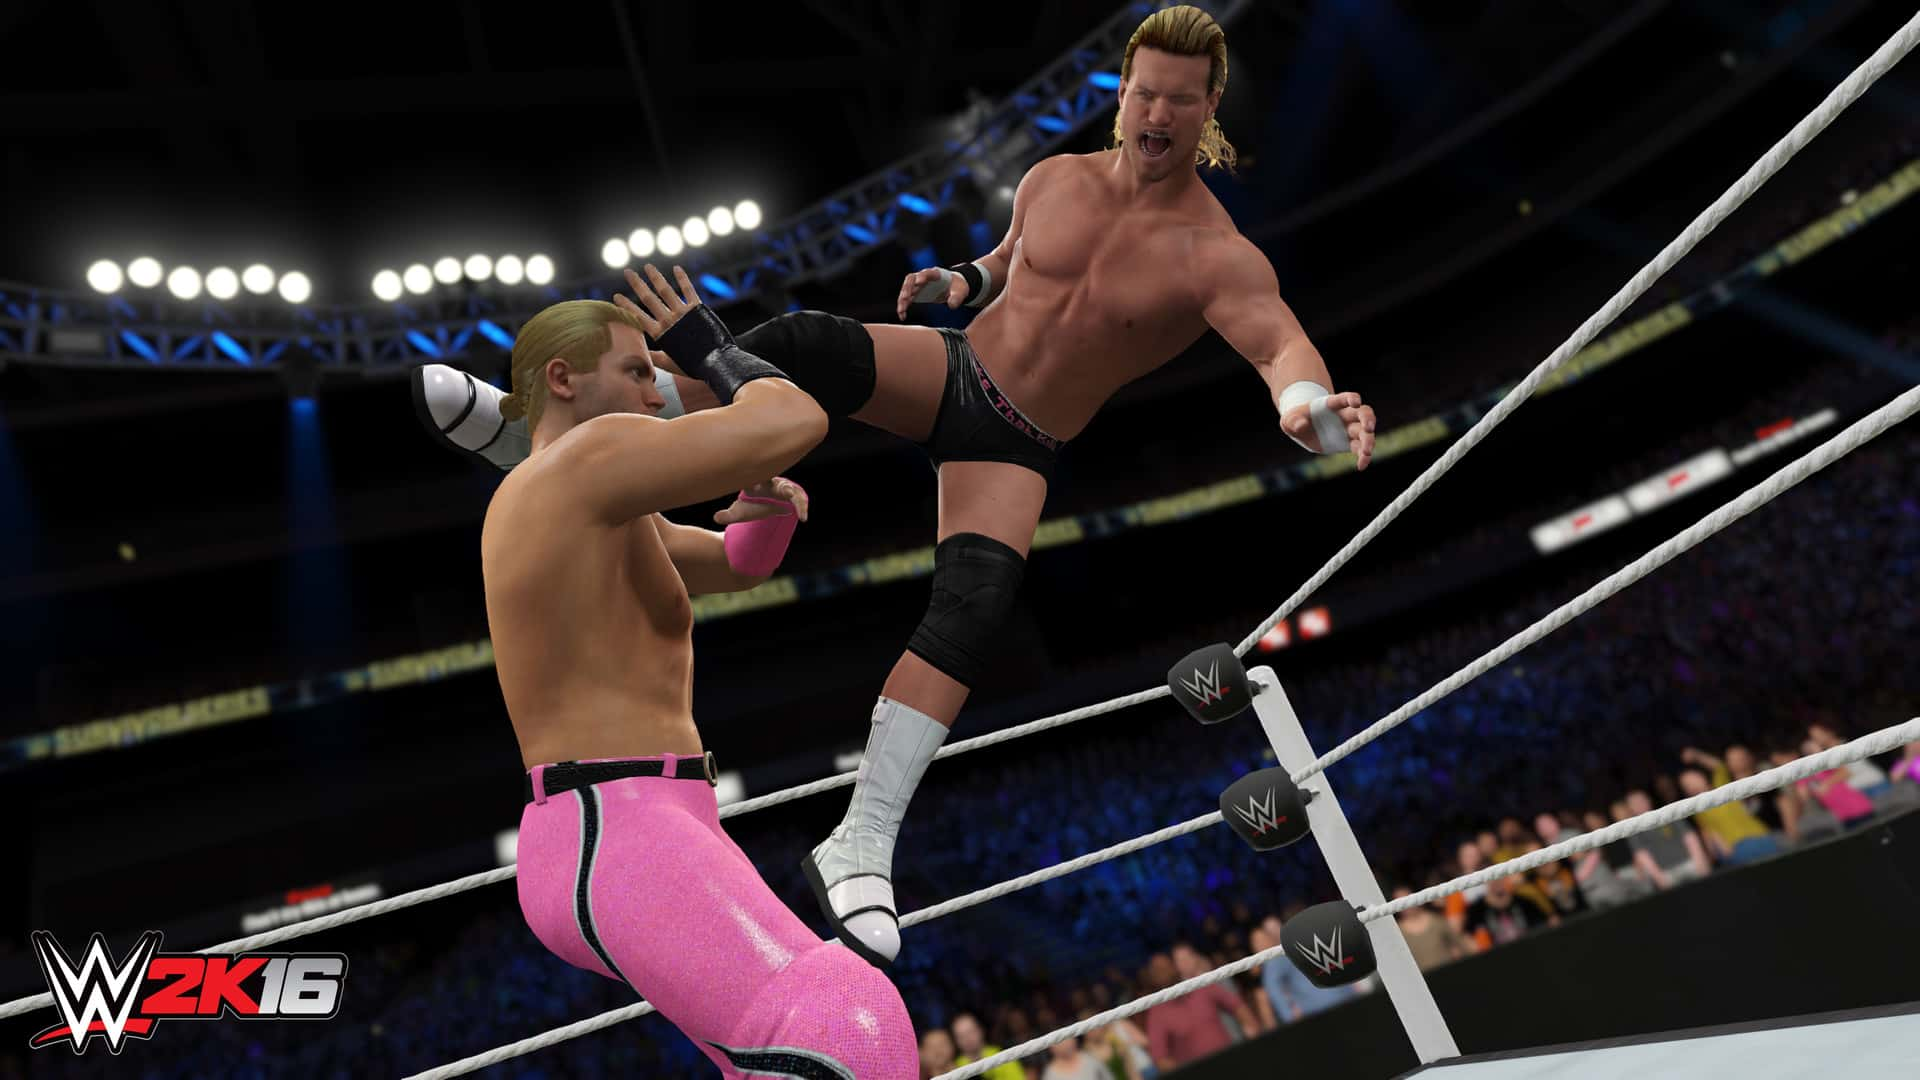 WWE 2K16 Download Free PC Game - Install-Game